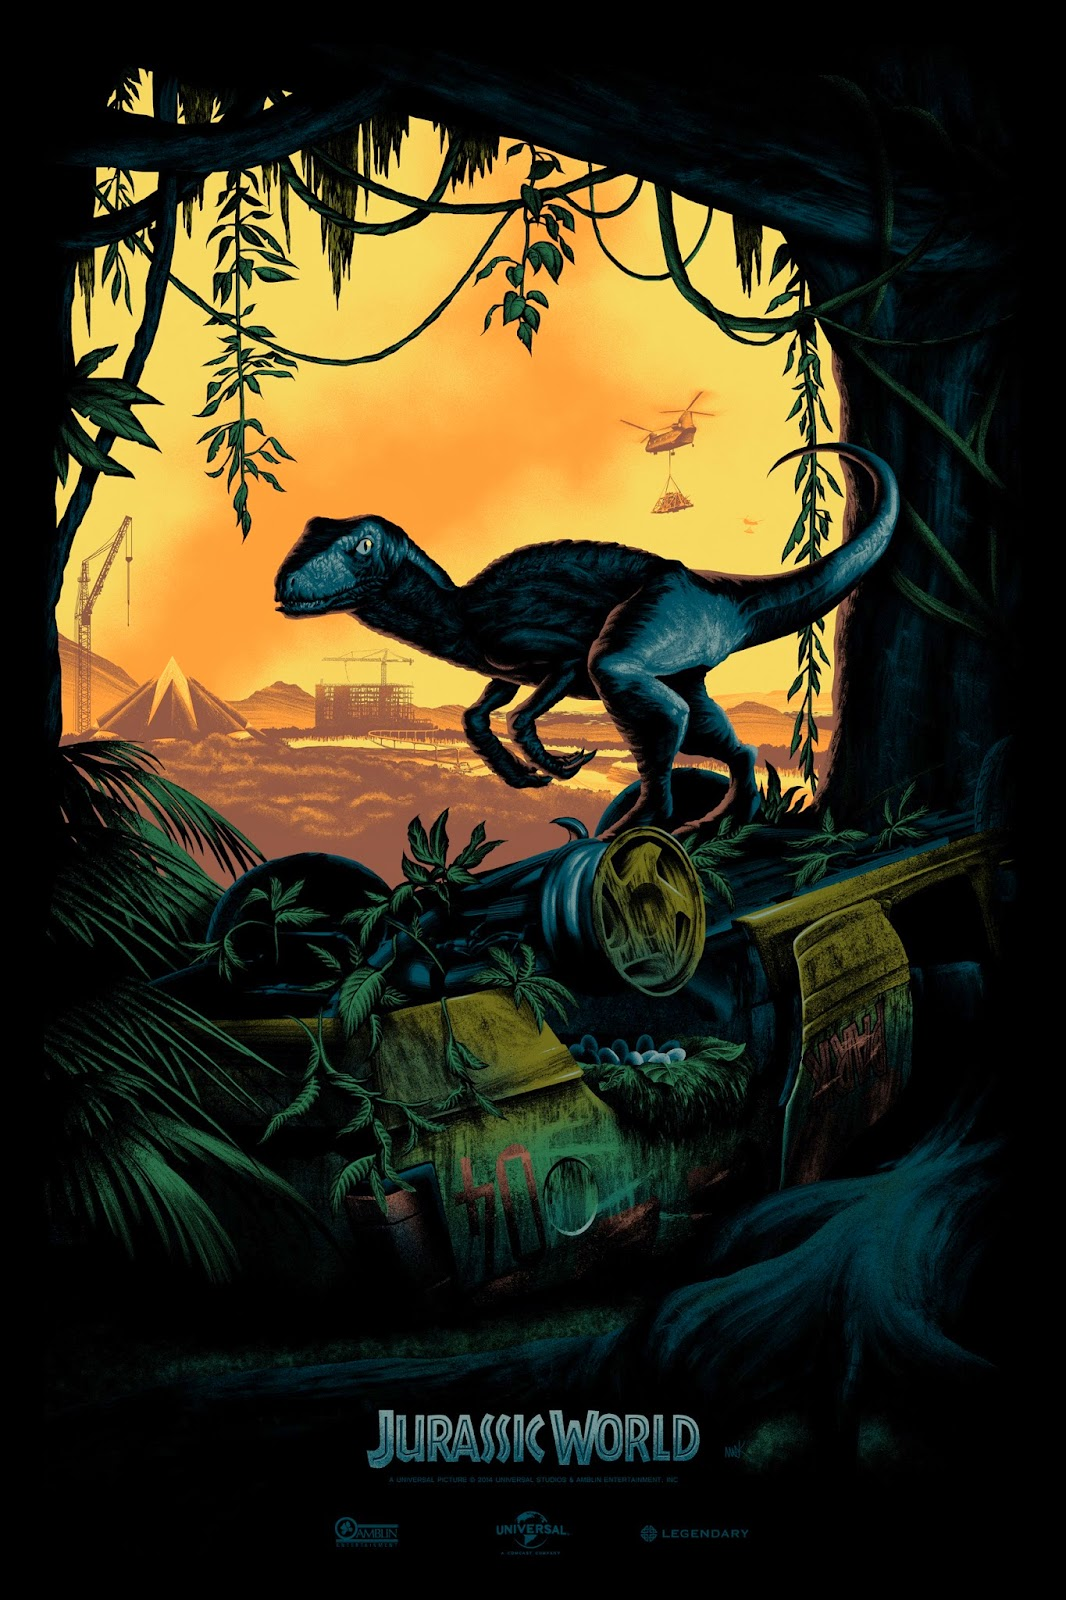 """Jurassic World"" by Mark Englert.  24"" x 36"" 7-color Screenprint.  Ed of 500."